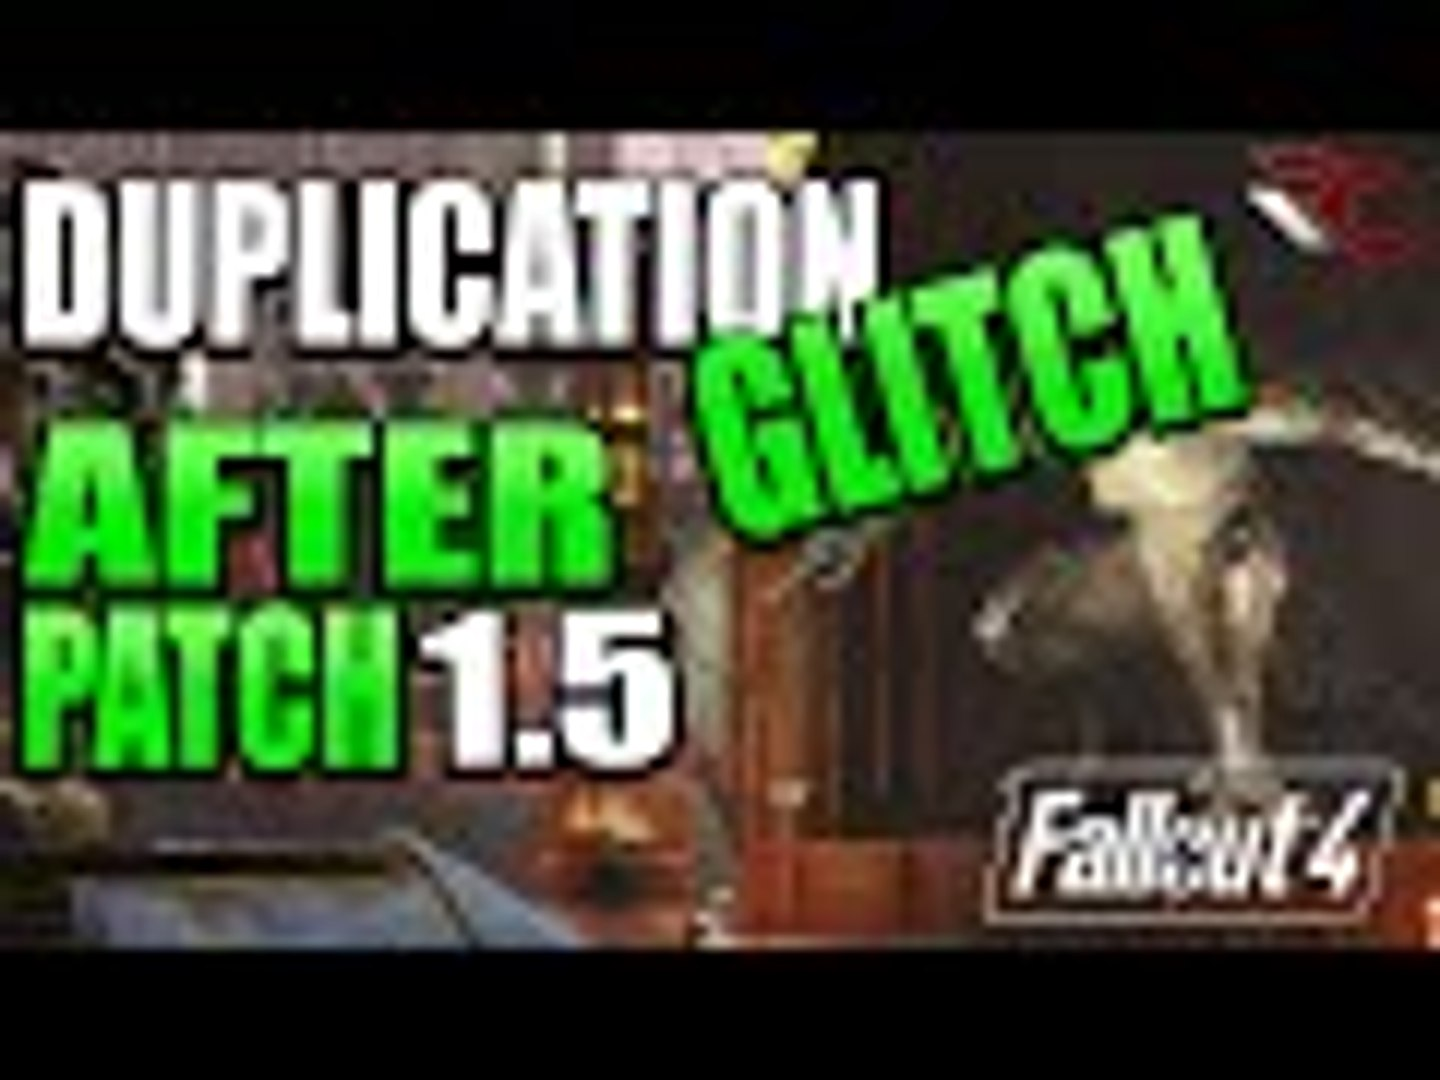 Fallout 4 | BRAND NEW Duplication Glitch/ Exploit After Patch 1 4 & 1 5  (Unlimited Resources)